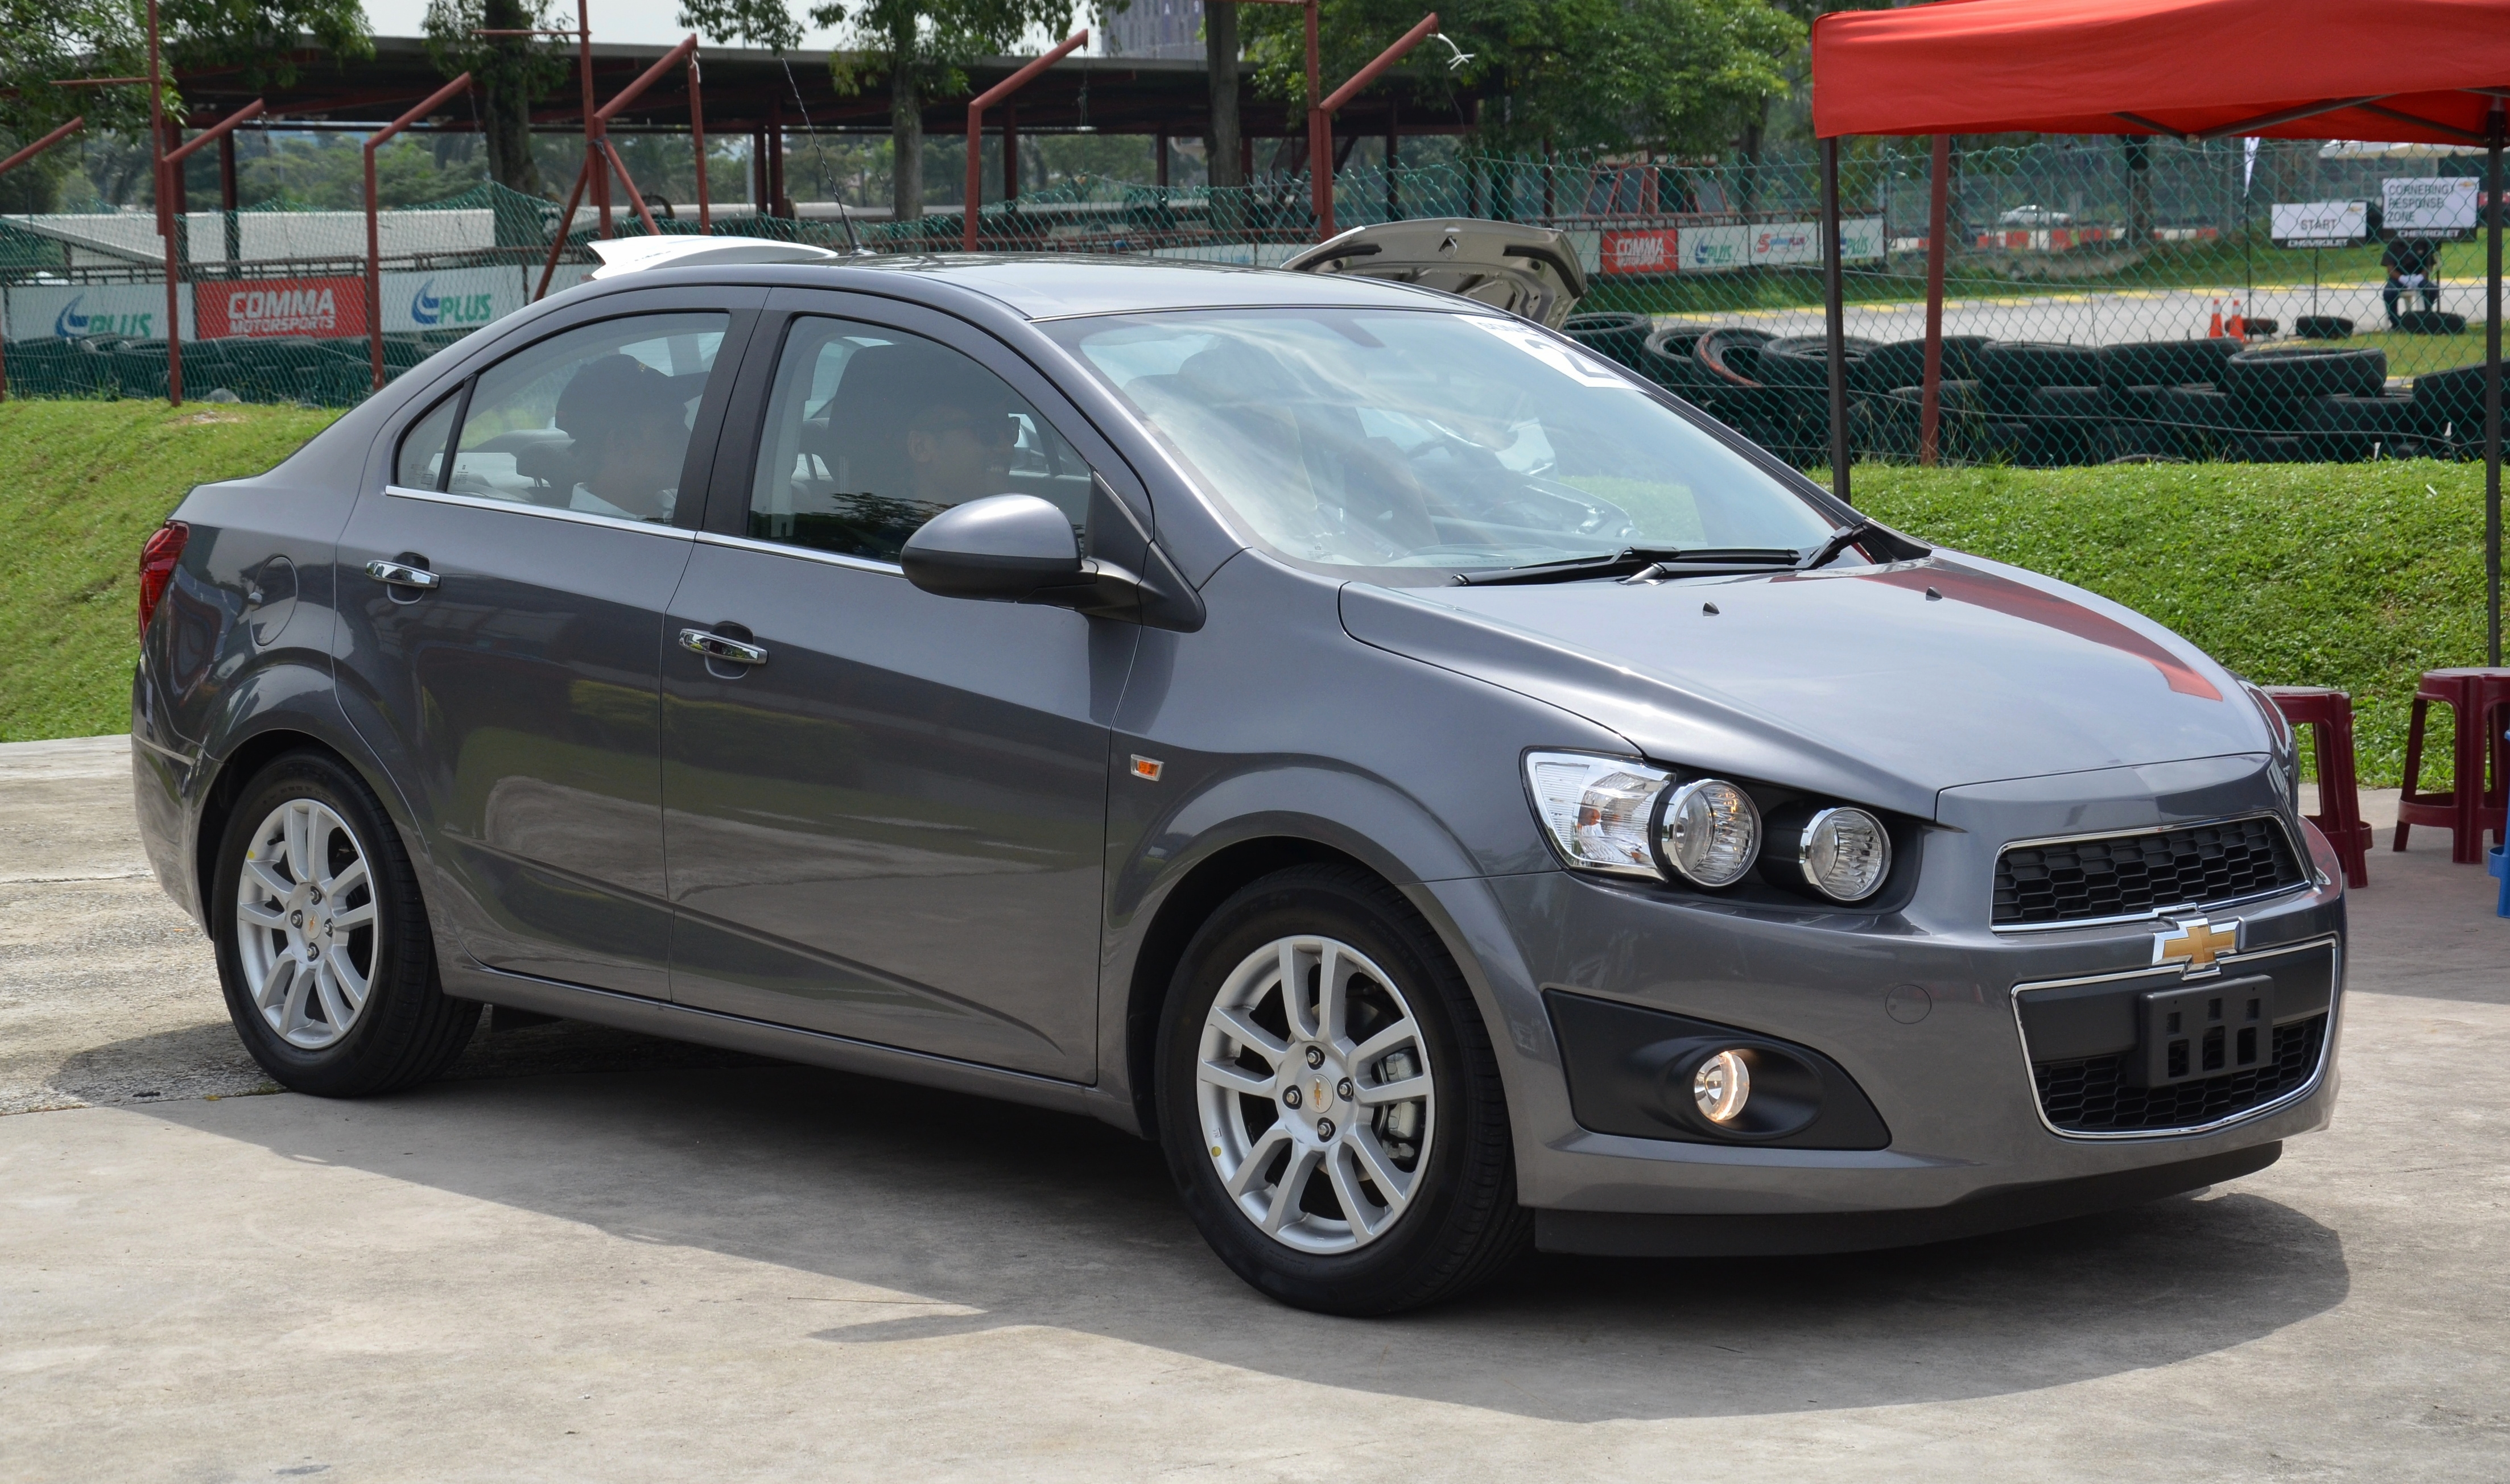 bh cardetails chevrolet bahrain in recent car mycar sell buy sonic